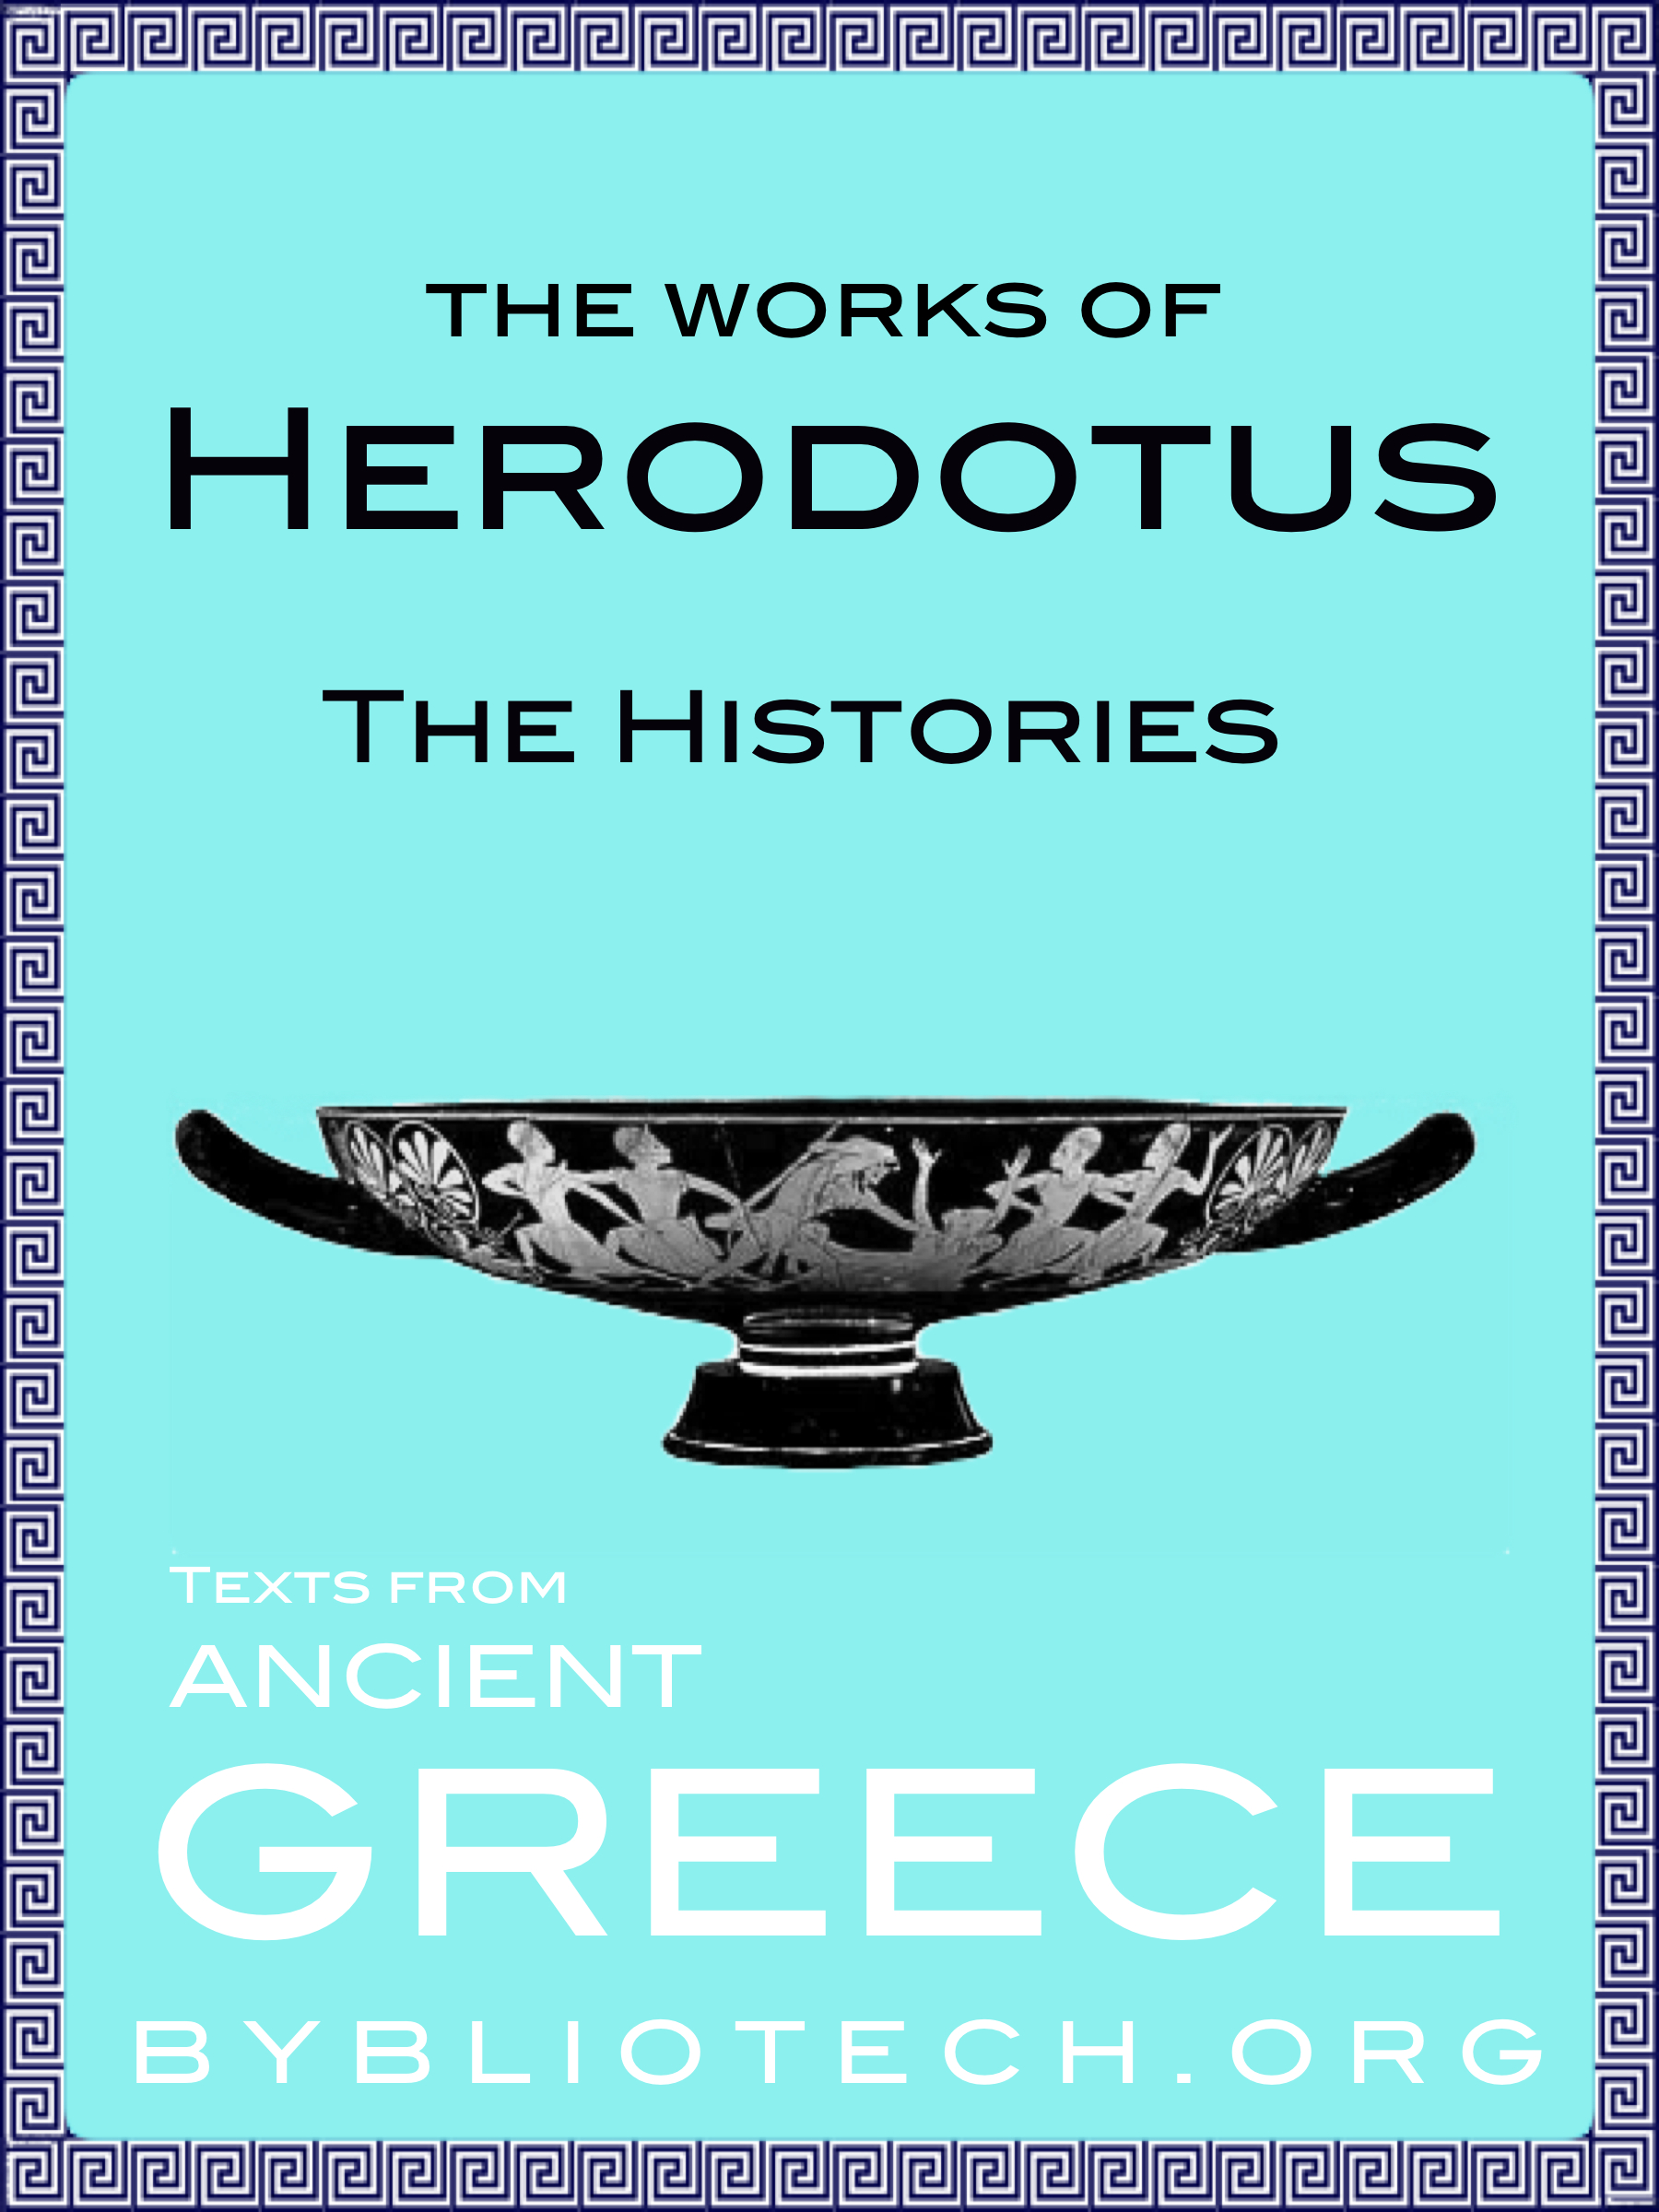 The Complete Herodotus Anthology: The Histories By: Herodotus